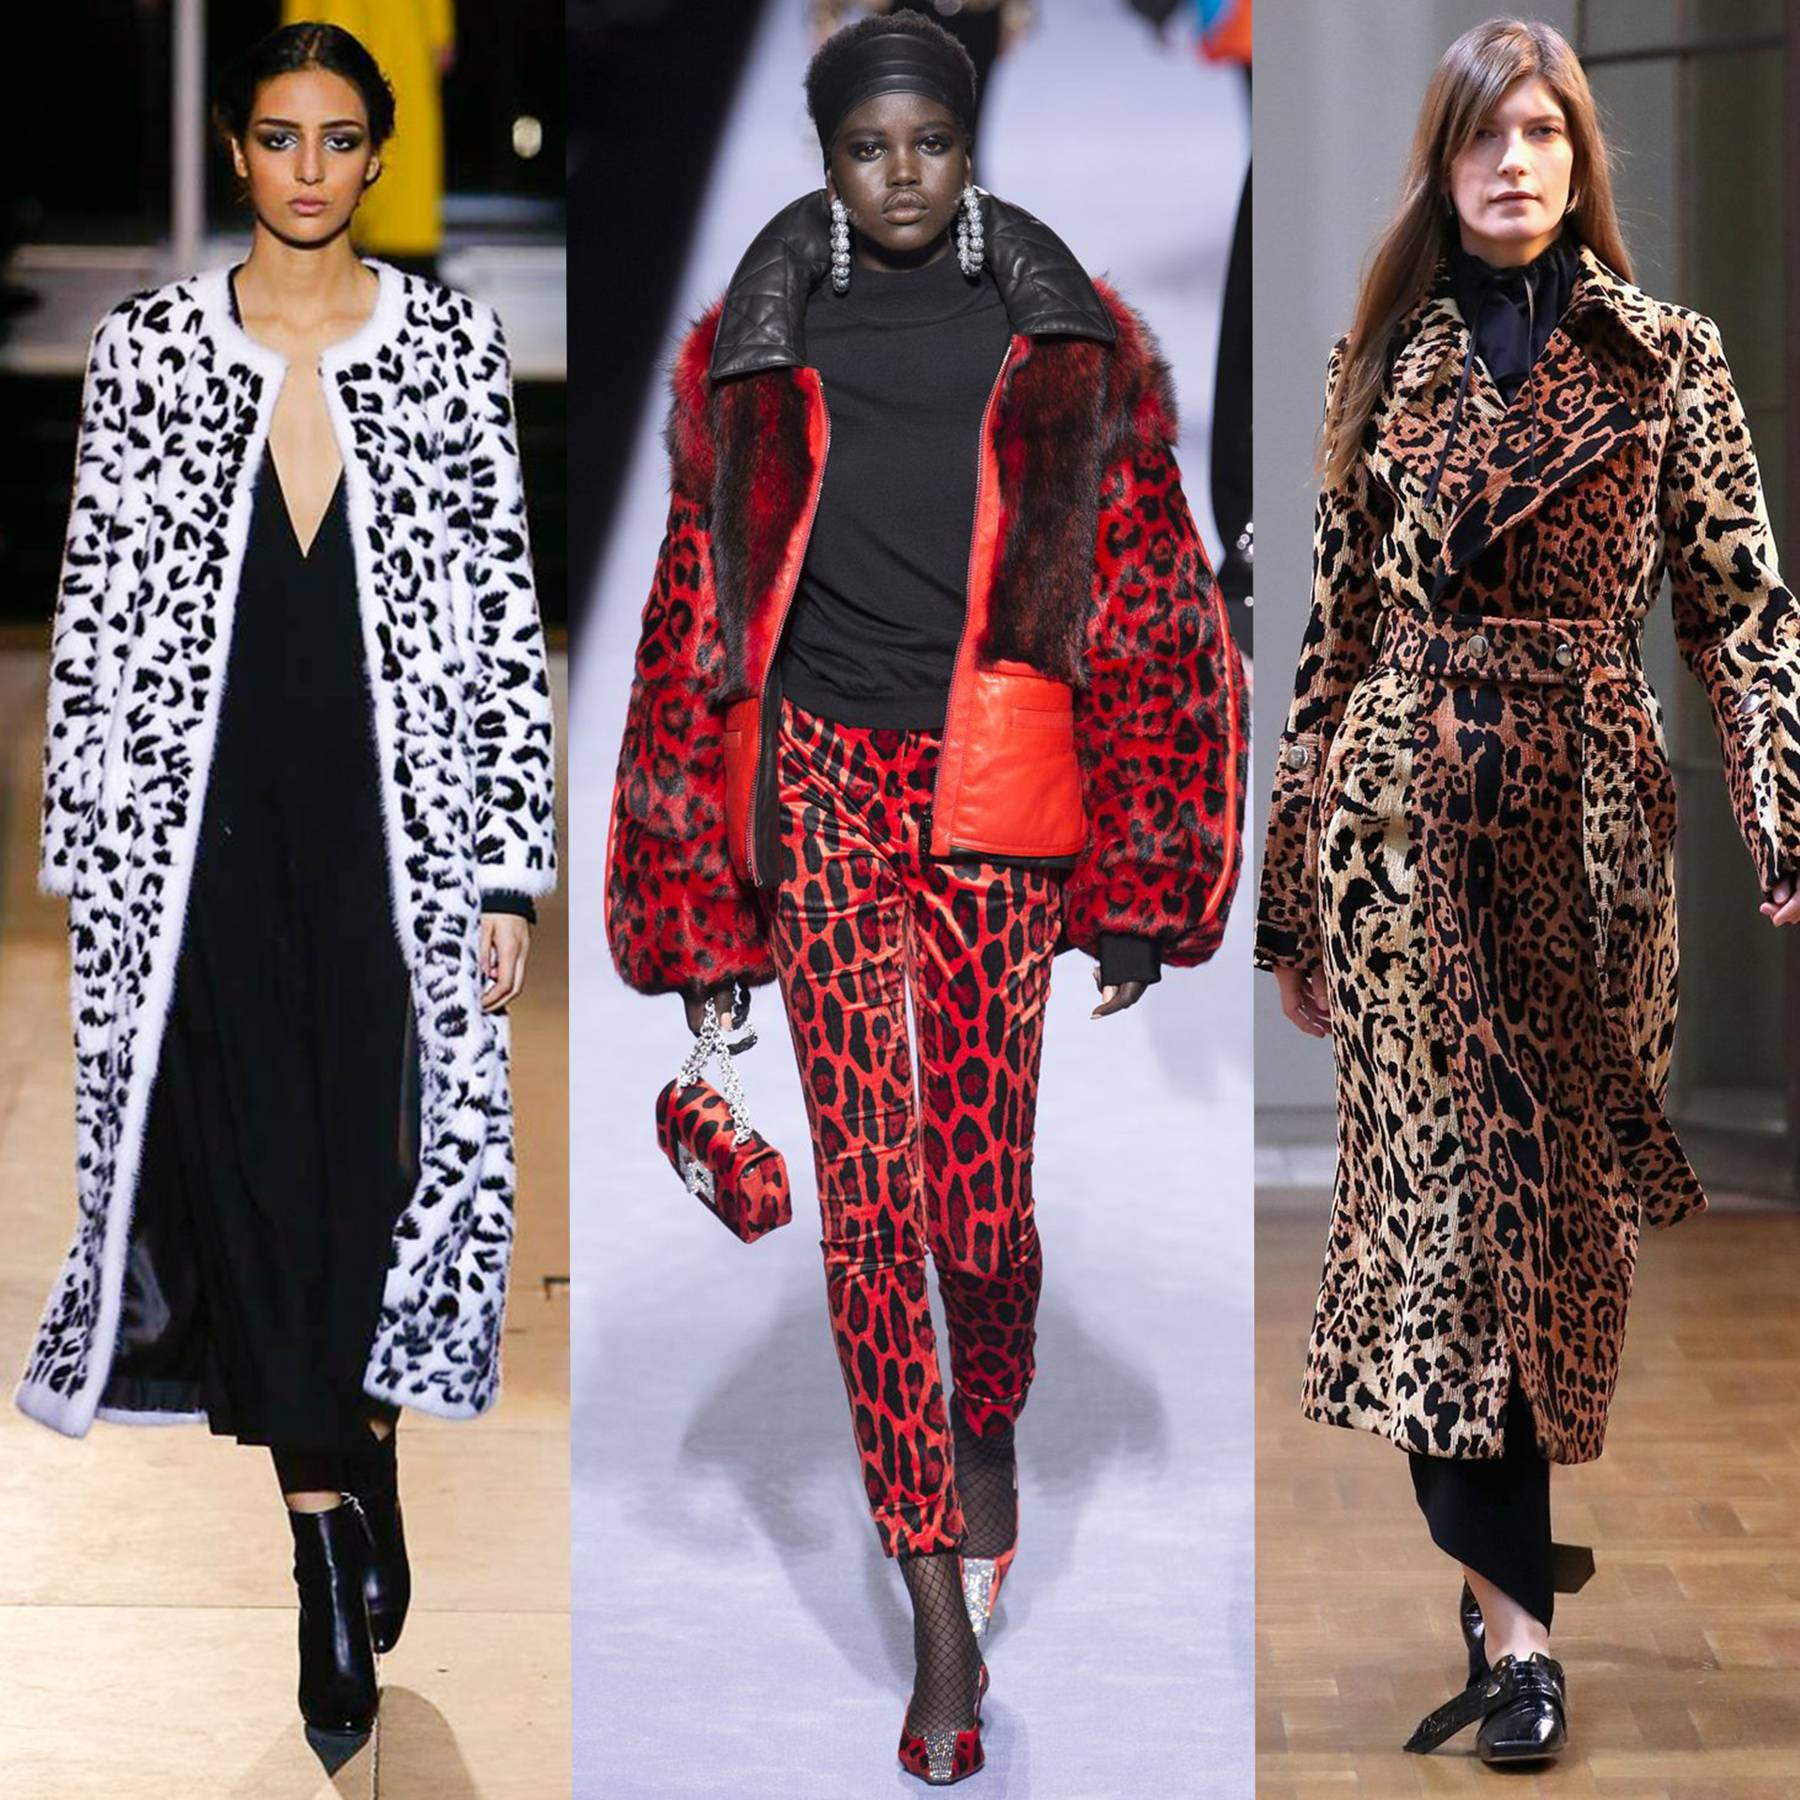 aa295b7af91 Autumn Winter 2018 Trend  Animal Print